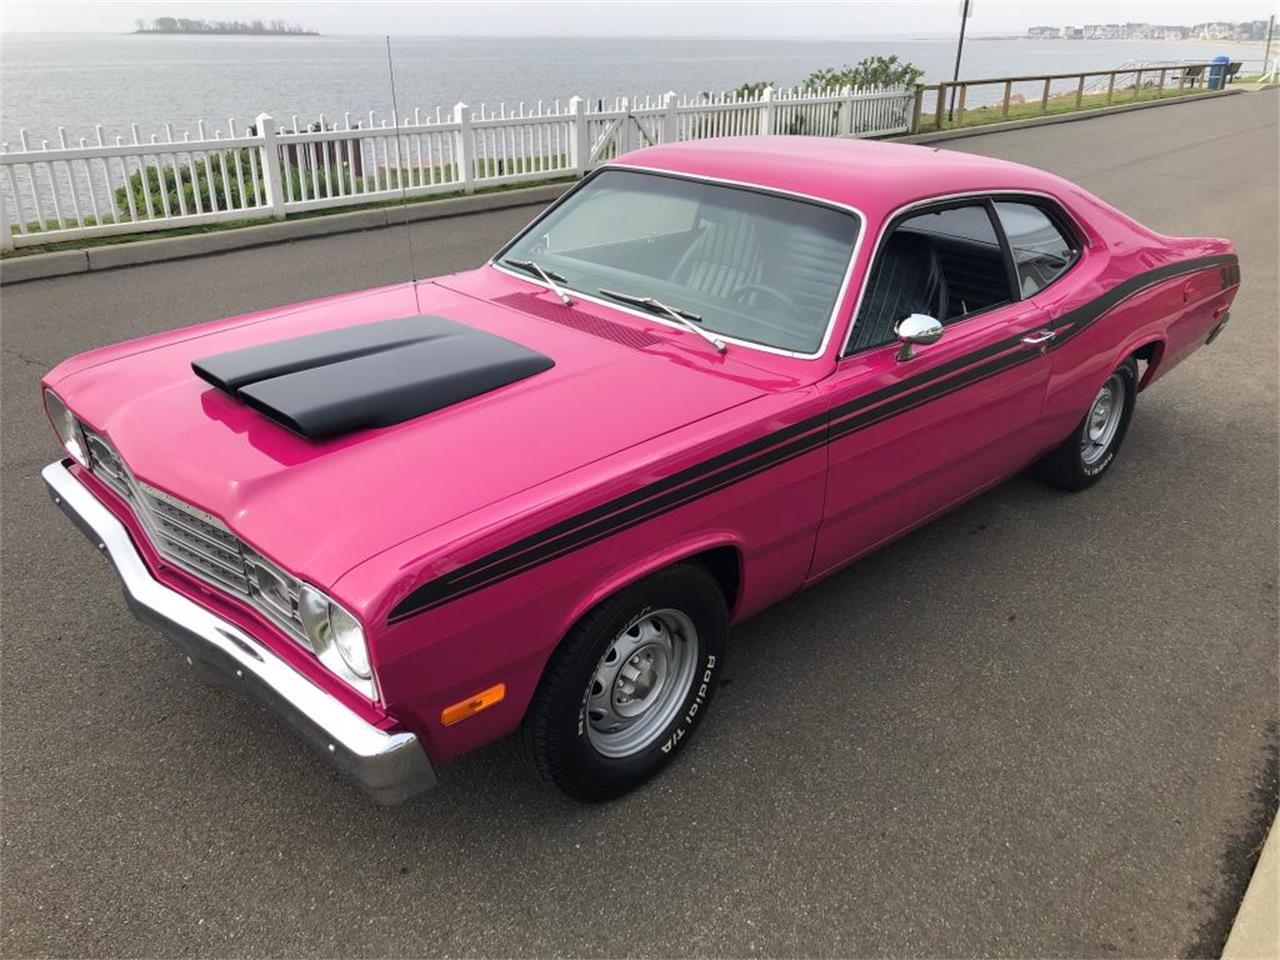 1973 Plymouth Duster (CC-1188543) for sale in Milford City, Connecticut